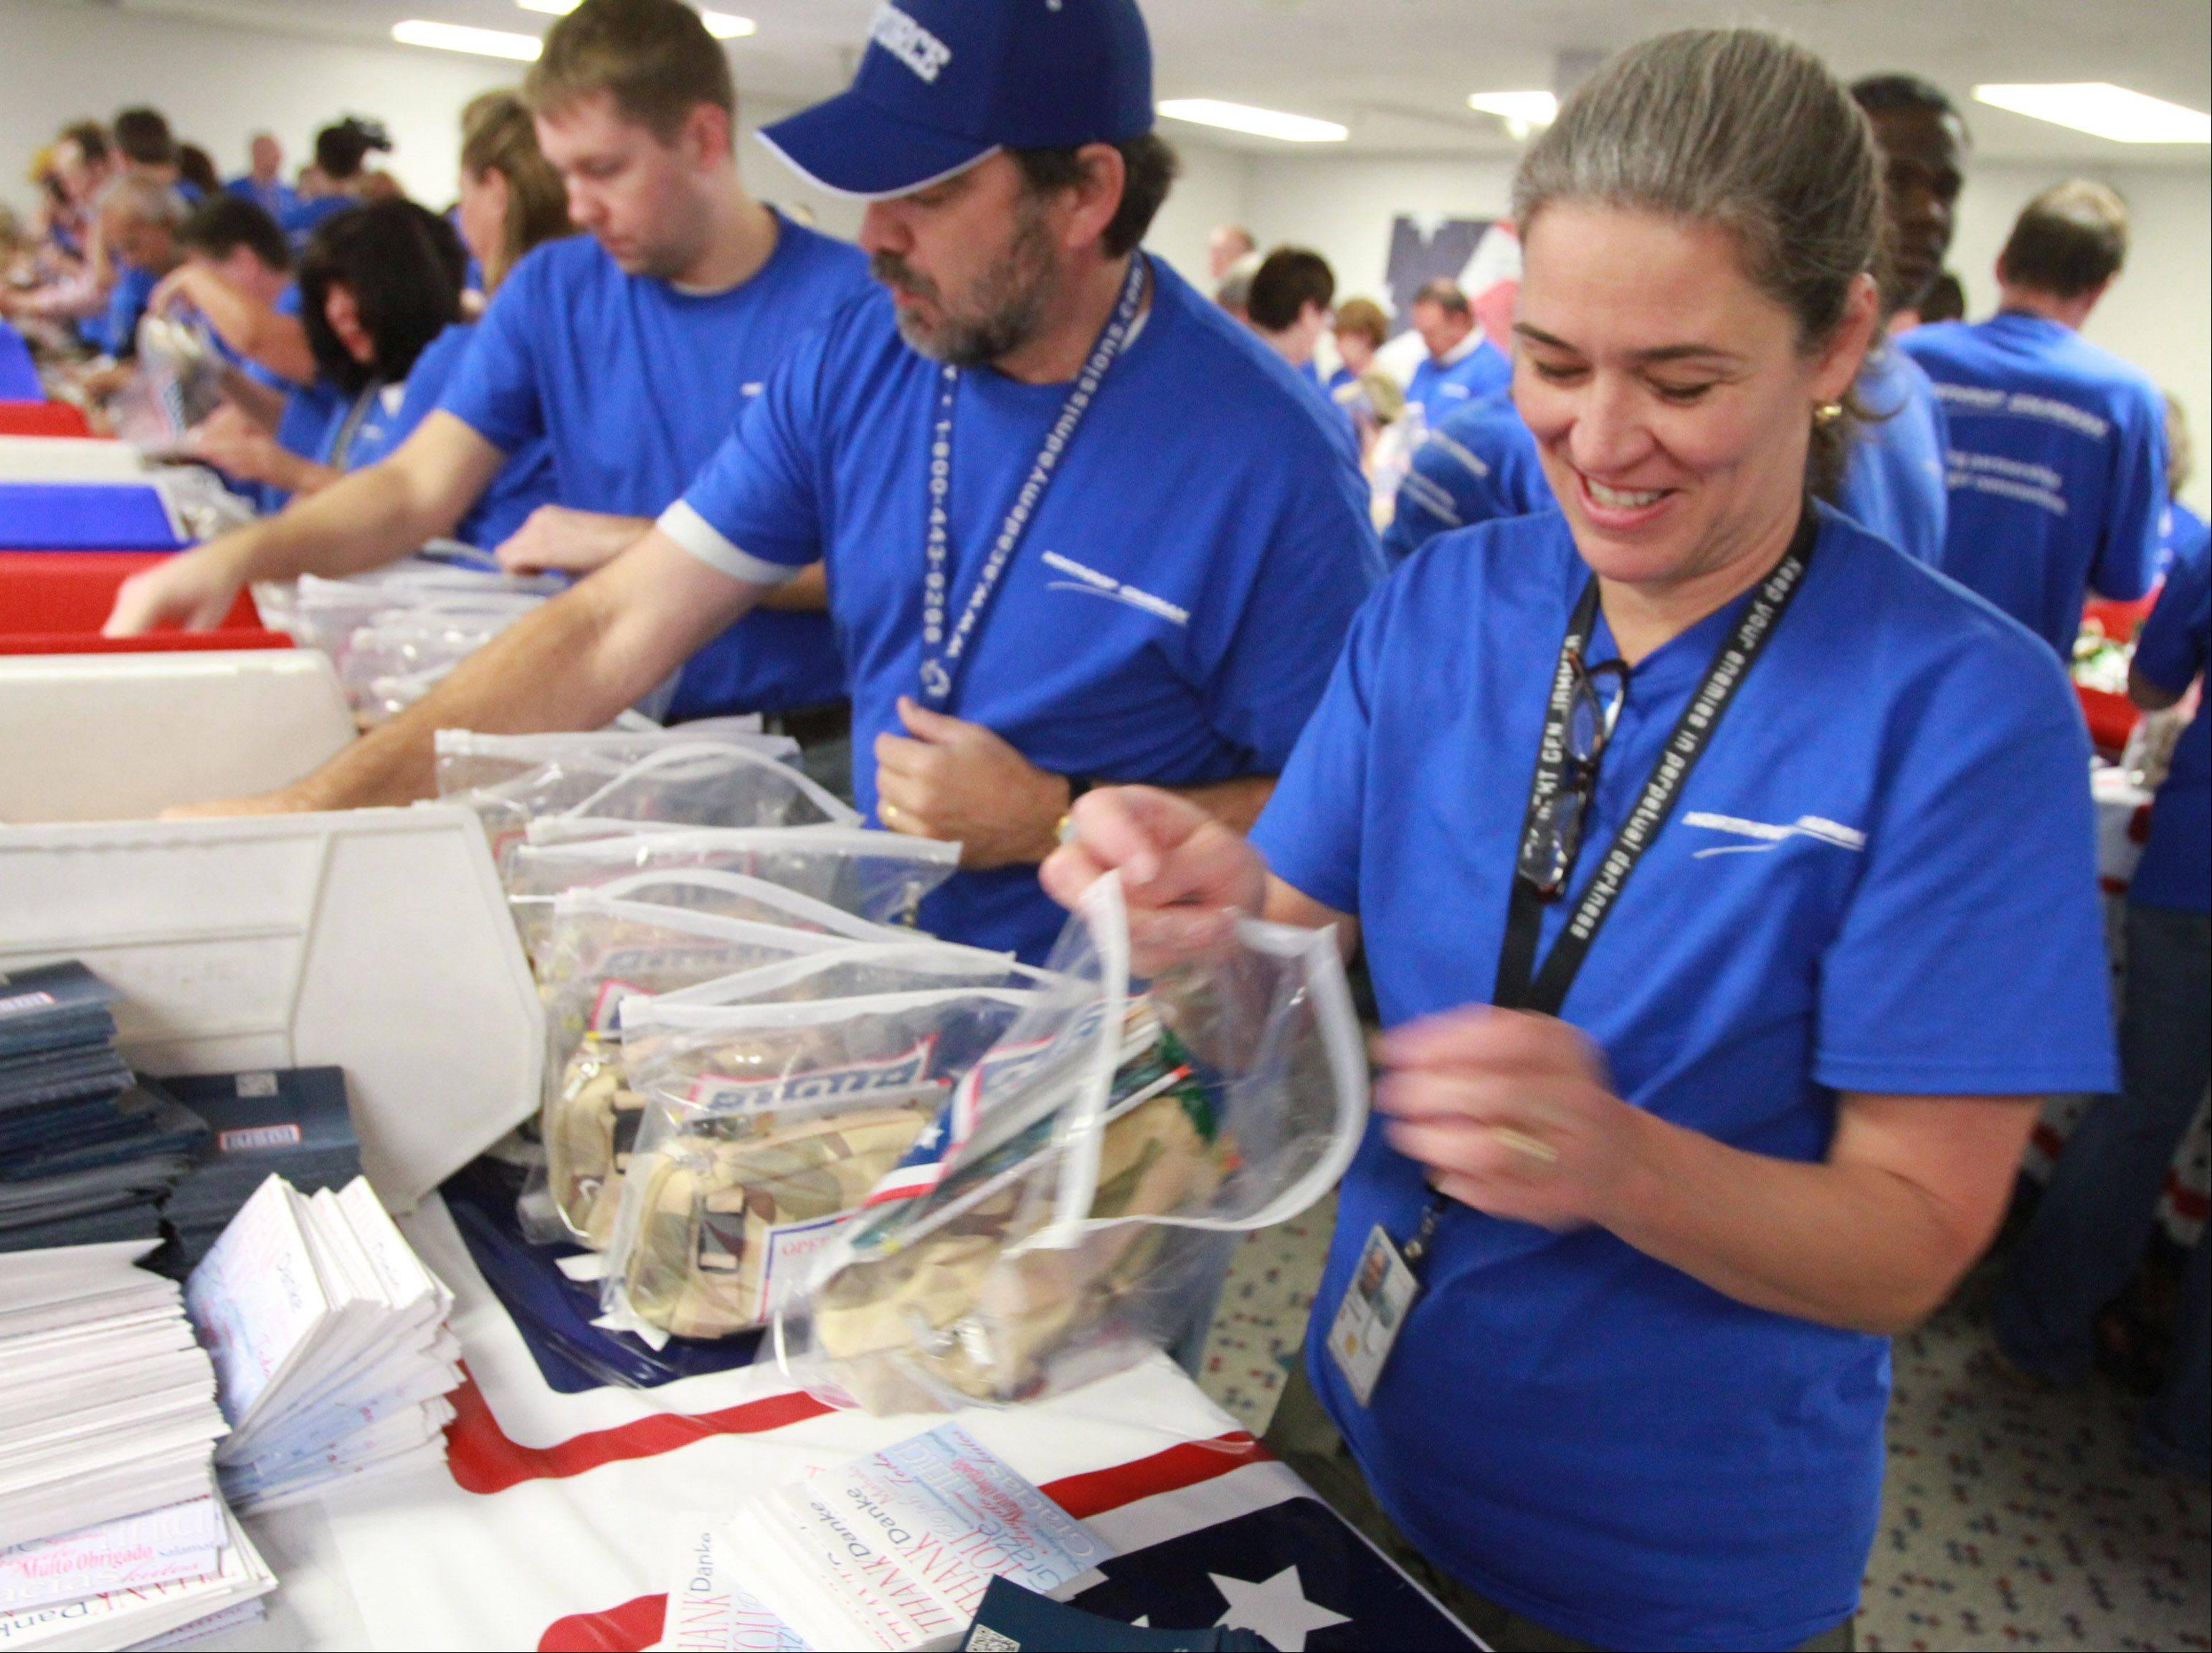 Janine Nyre of Lake Barrington, a vice president at Northrop Grumman's Rolling Meadows operation, stuffs USO care packages Saturday.